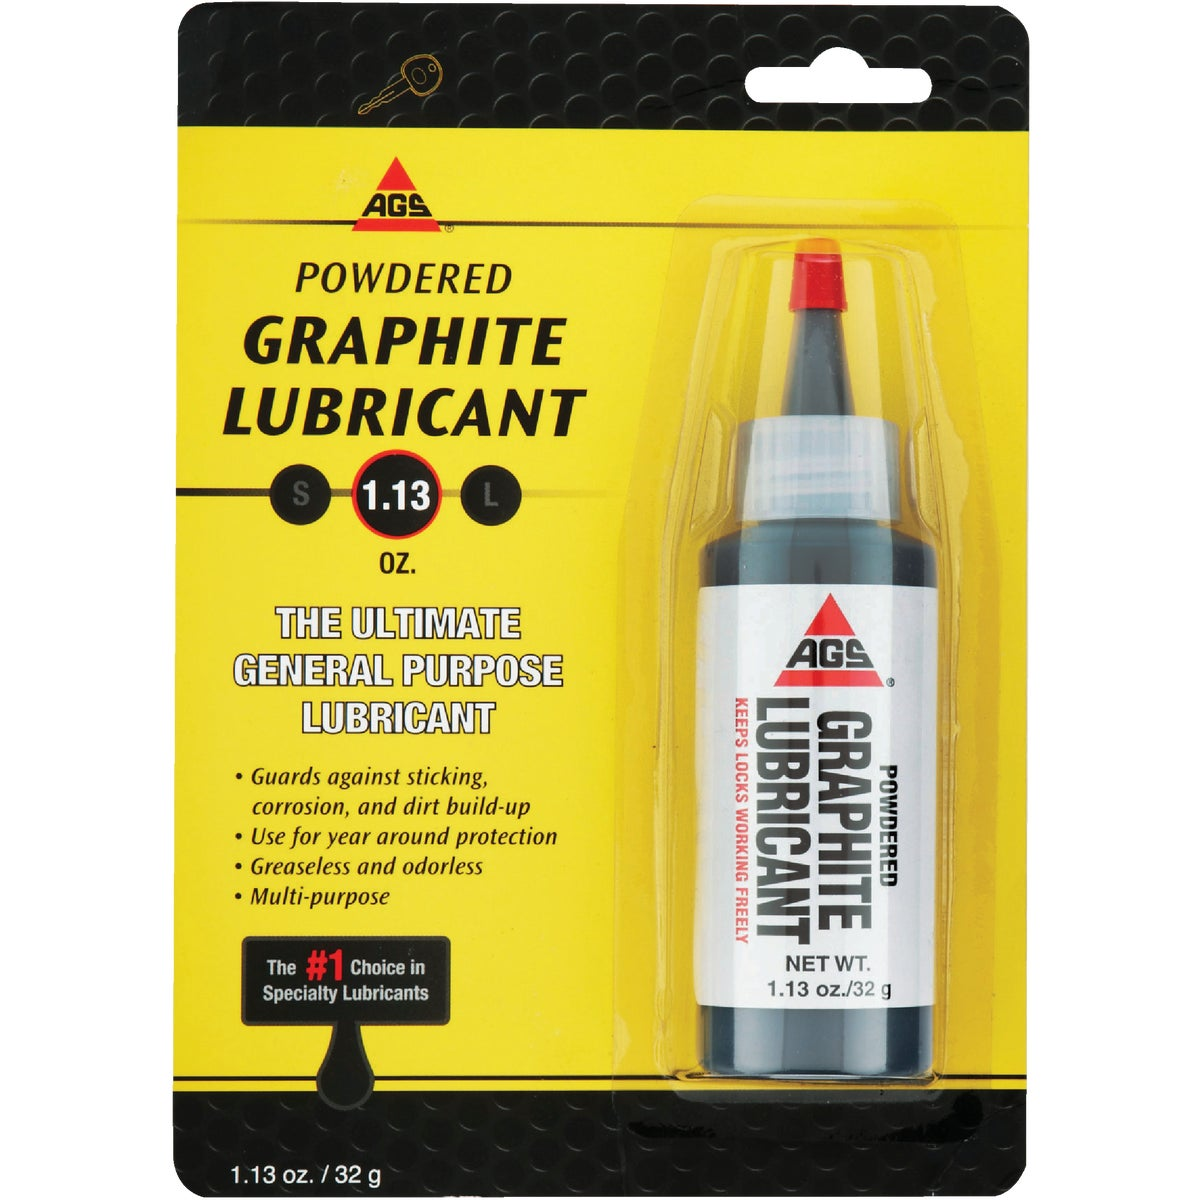 1.13Oz Powder Graphite